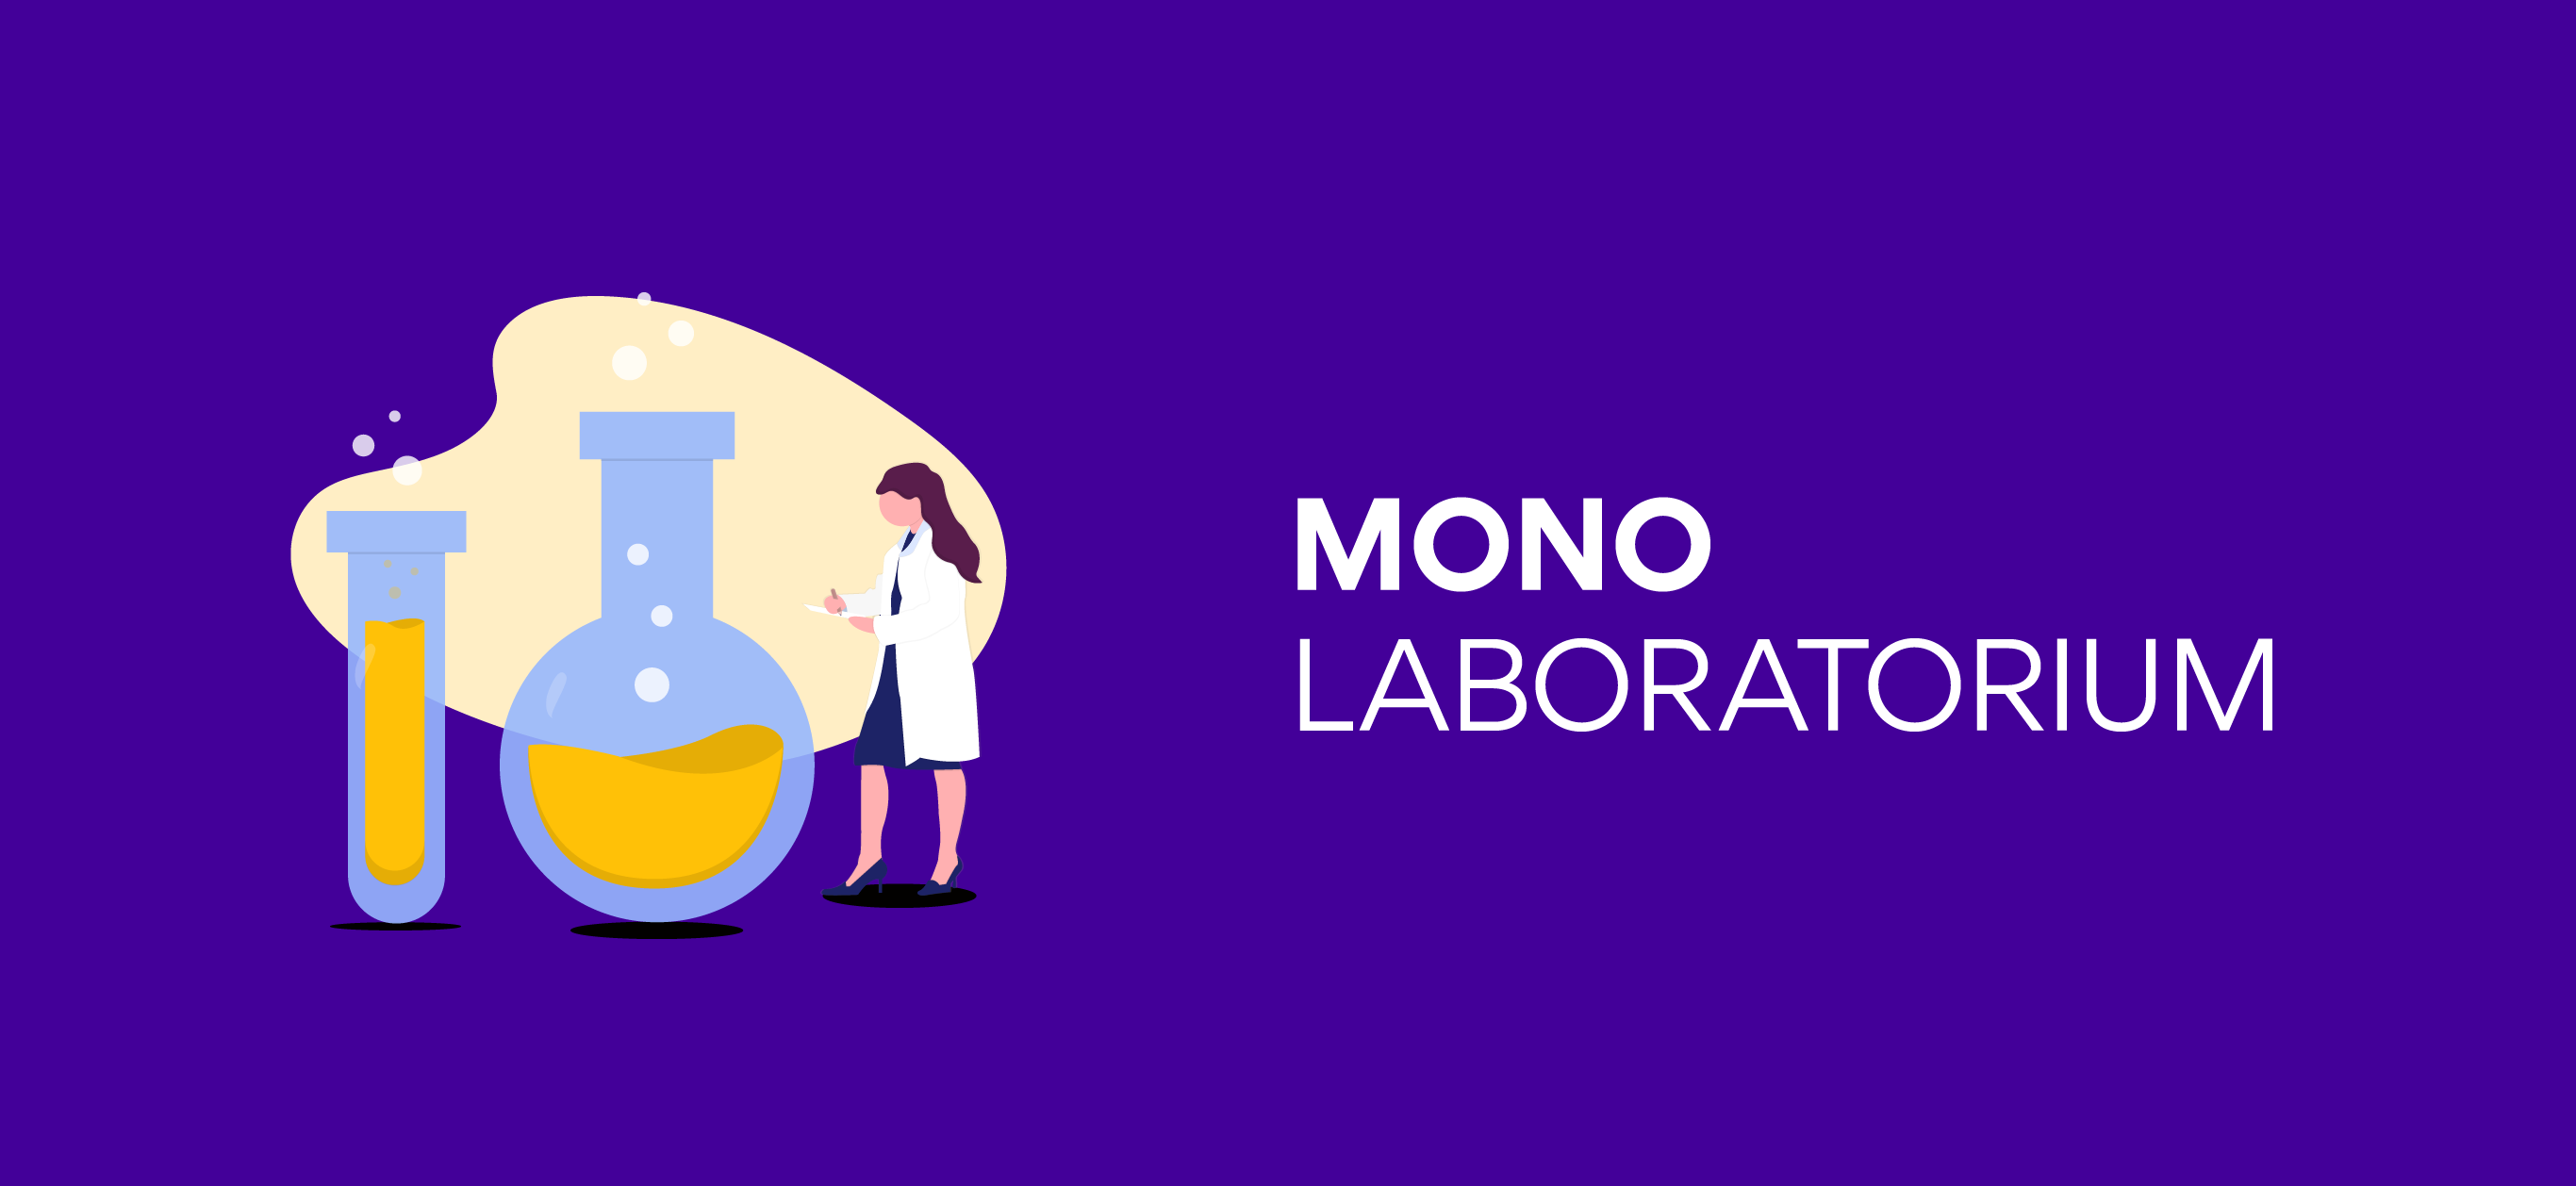 Mono Laboratorium